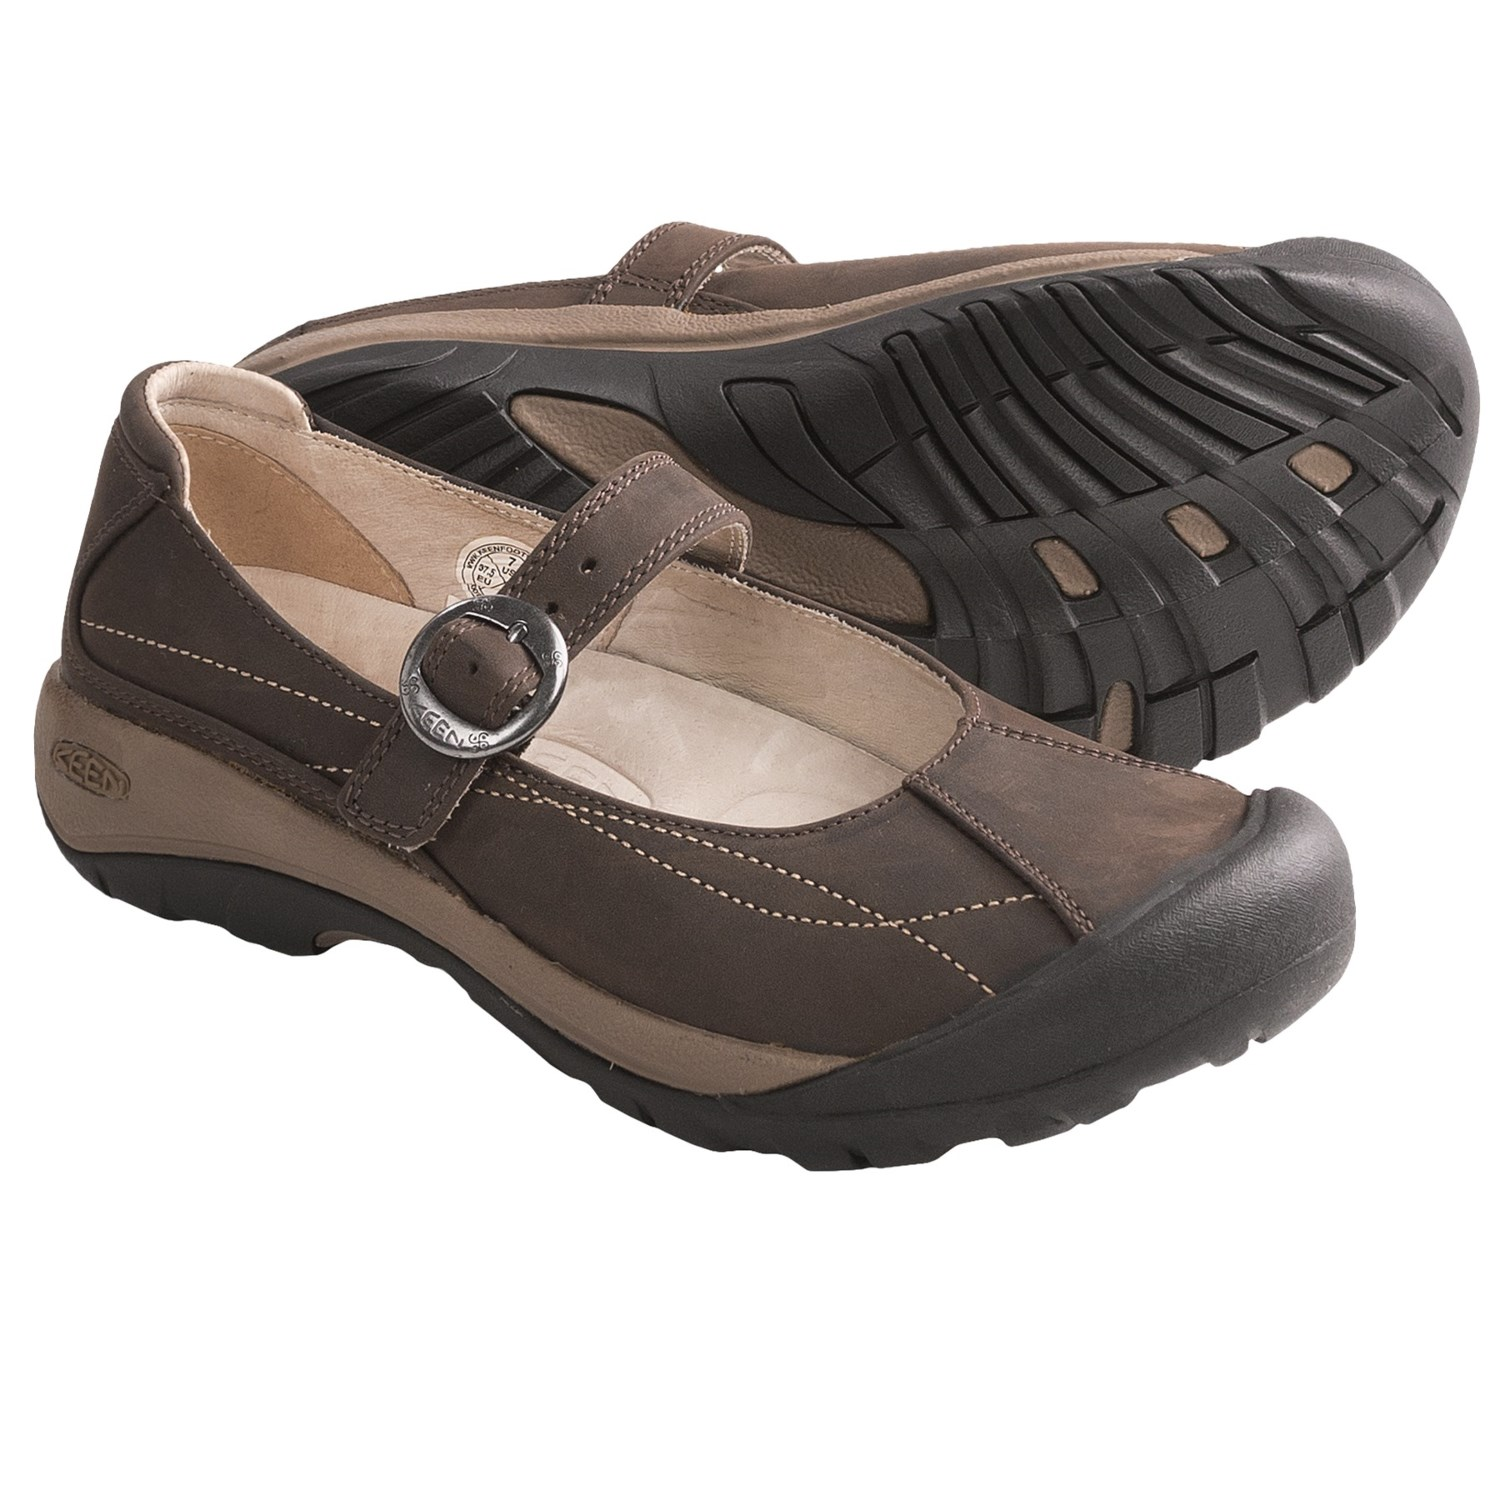 Keen Toyah Mary Jane Shoes (For Women) in Chocolate Brown